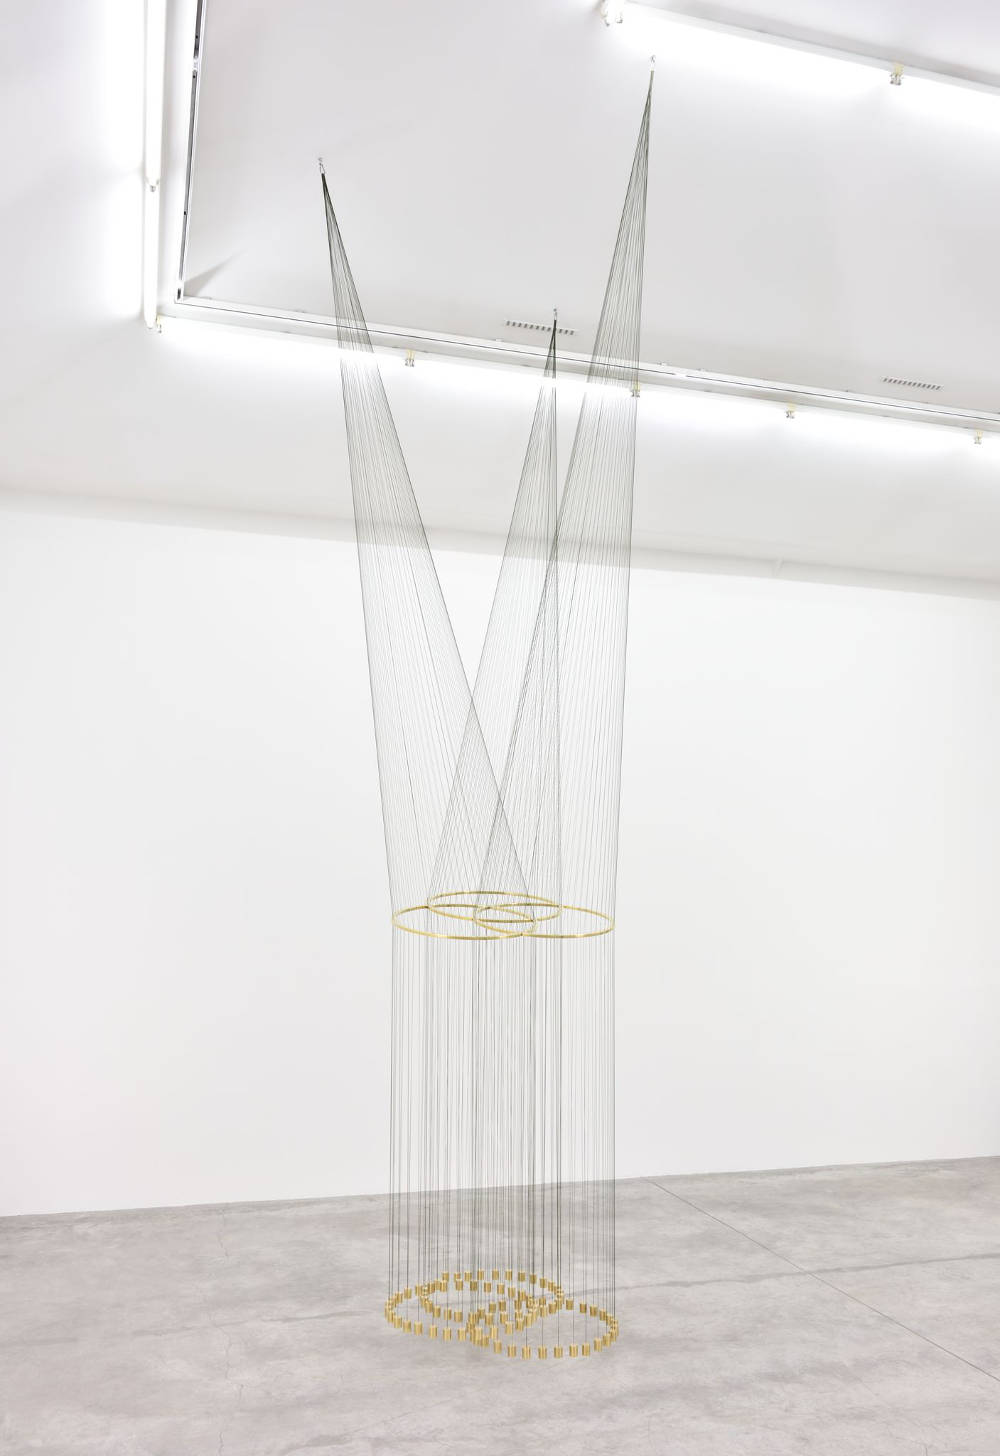 Artur Lescher, Infinito Triple, 2018. Brass and green multi lament lines 550 x 100 x 100 cm 216 1/2 x 39 3/8 x 39 3/8 in. Ed 5/5 © Artur Lescher - Photo: Rebecca Fanuele. Courtesy of the Artist and Almine Rech